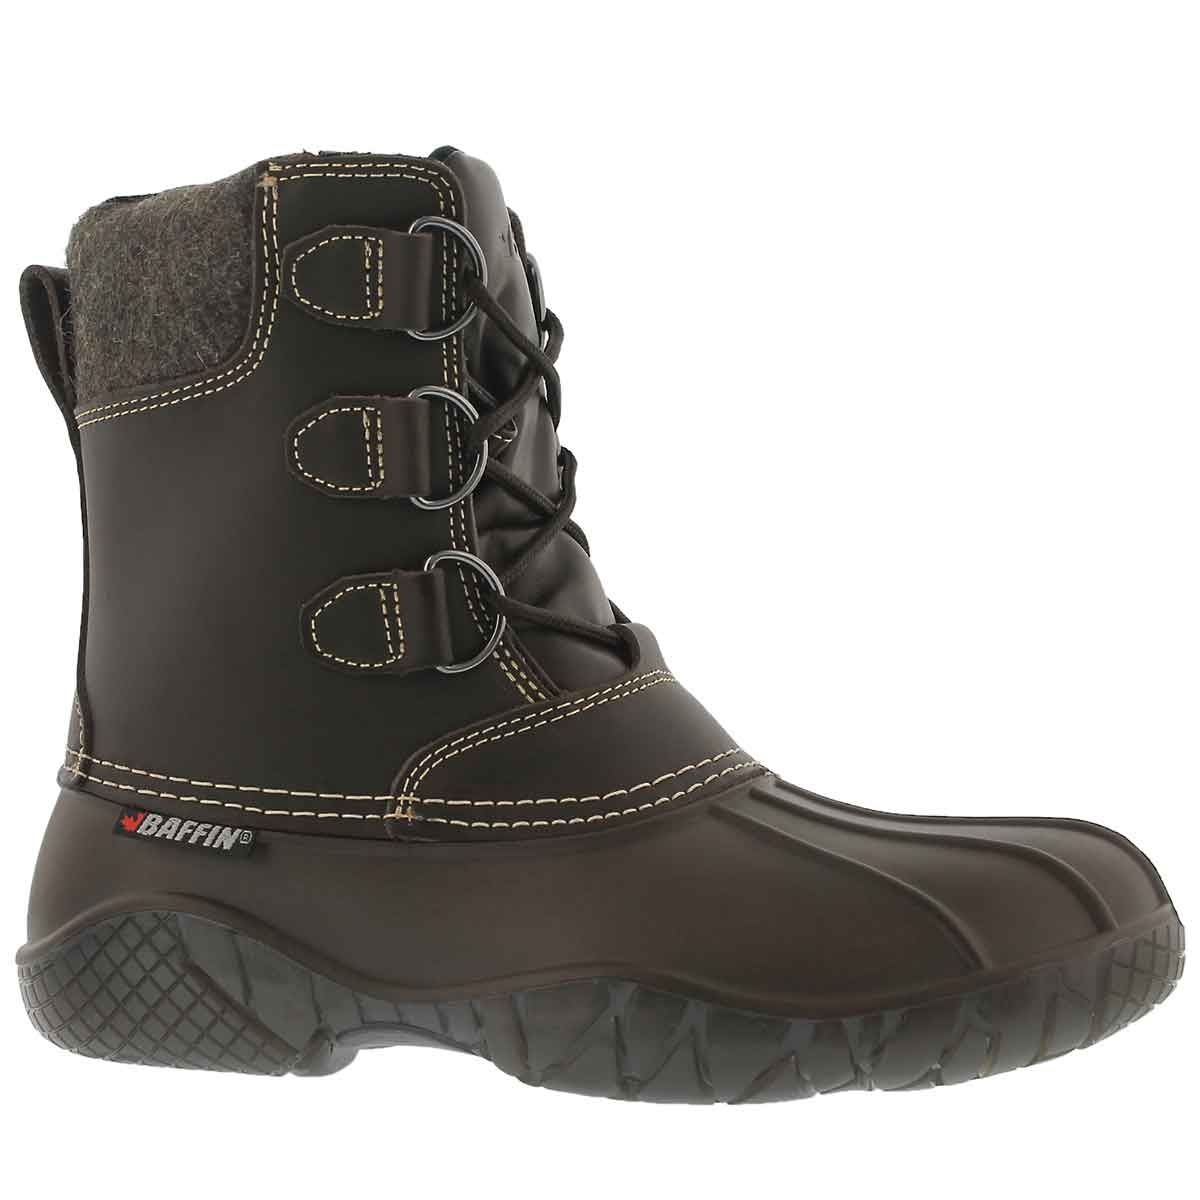 Women's SUPERIOR brown lace up rain boots